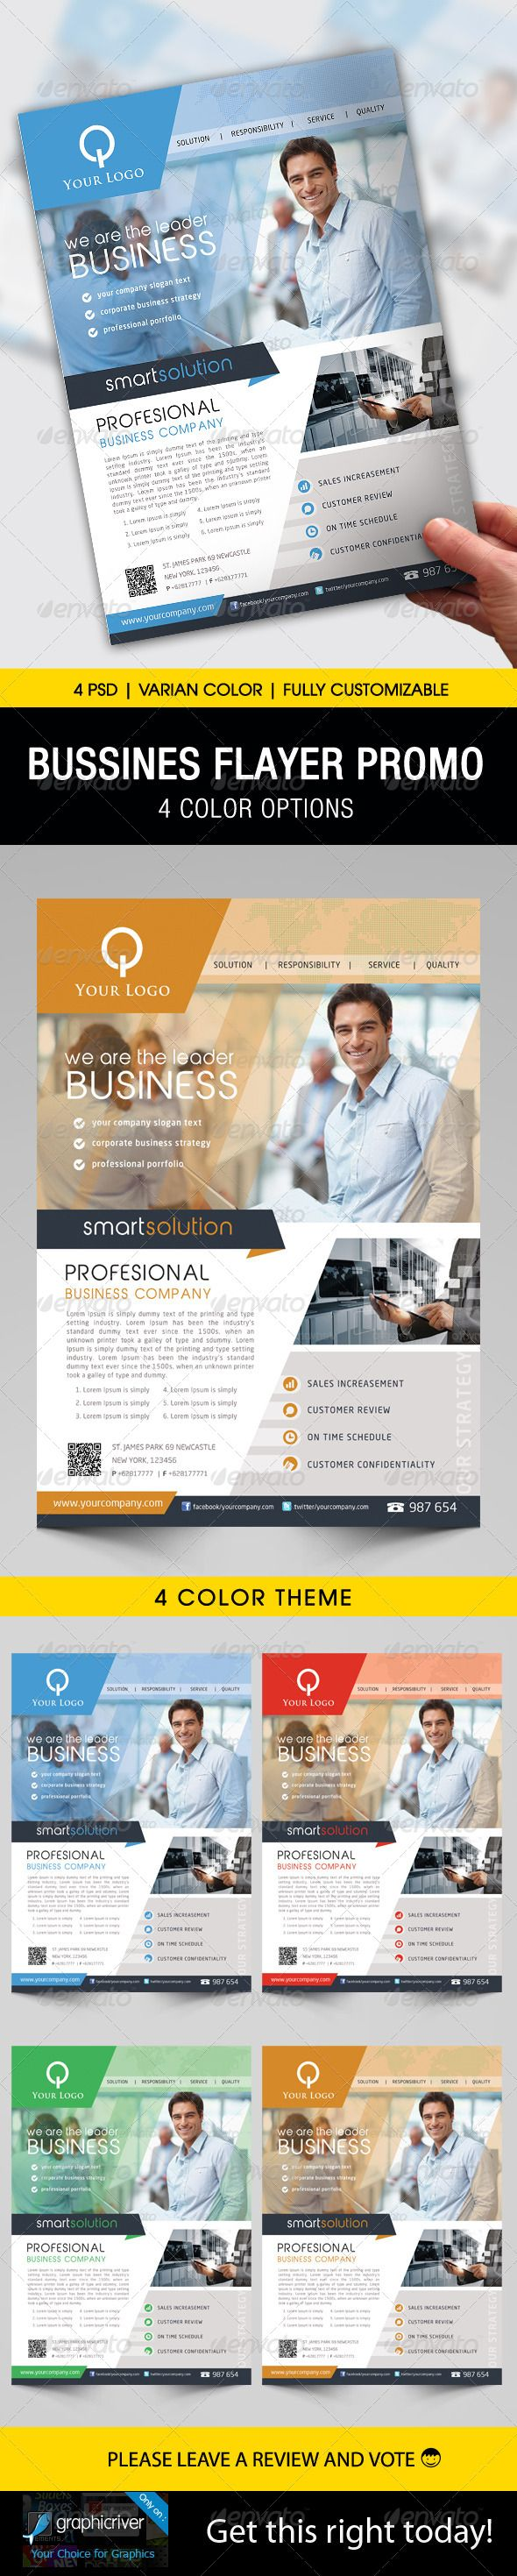 best images about postcard design business business flyer template marketing flyer designbusiness